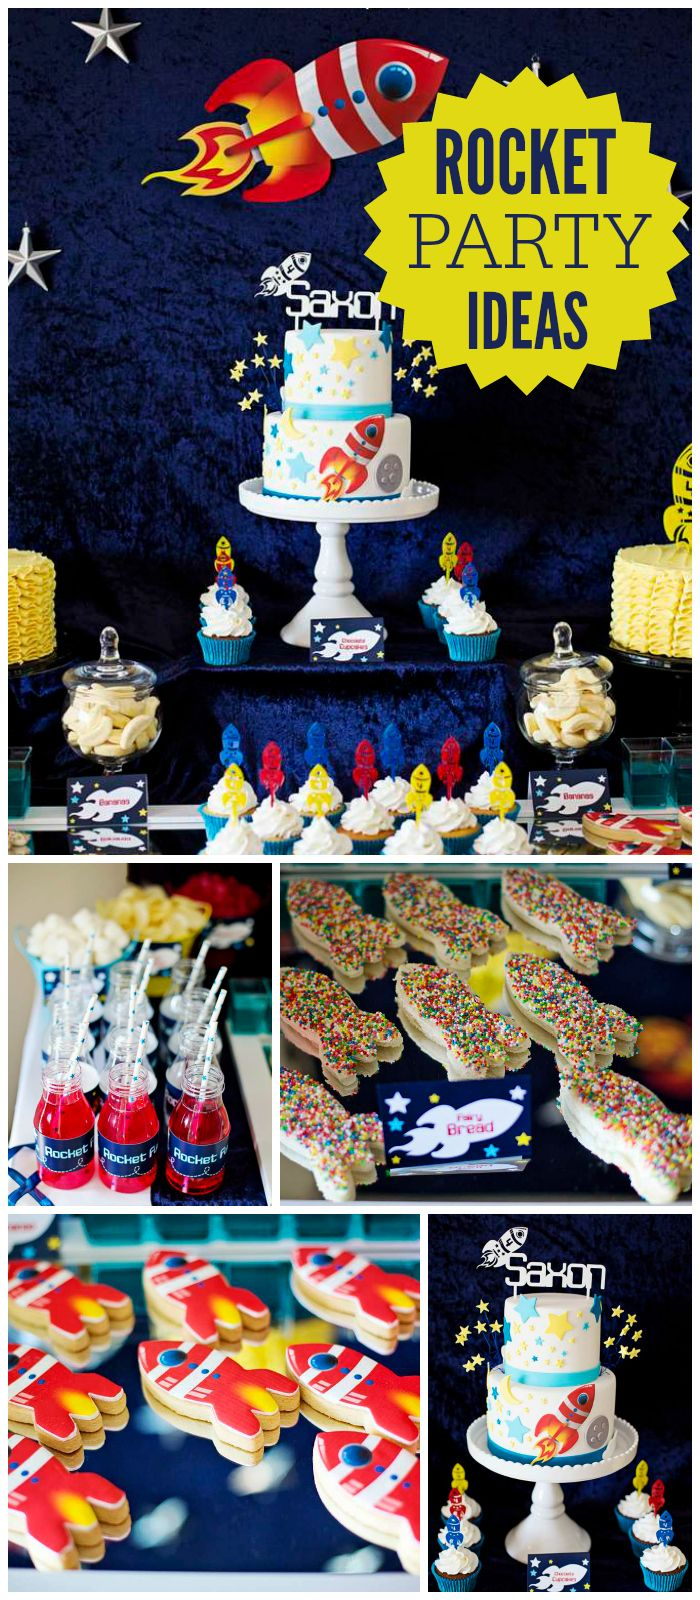 Check Out This Awesome Outer Space Rocket Birthday Party With Fairy Bread  And An Amazing Cake